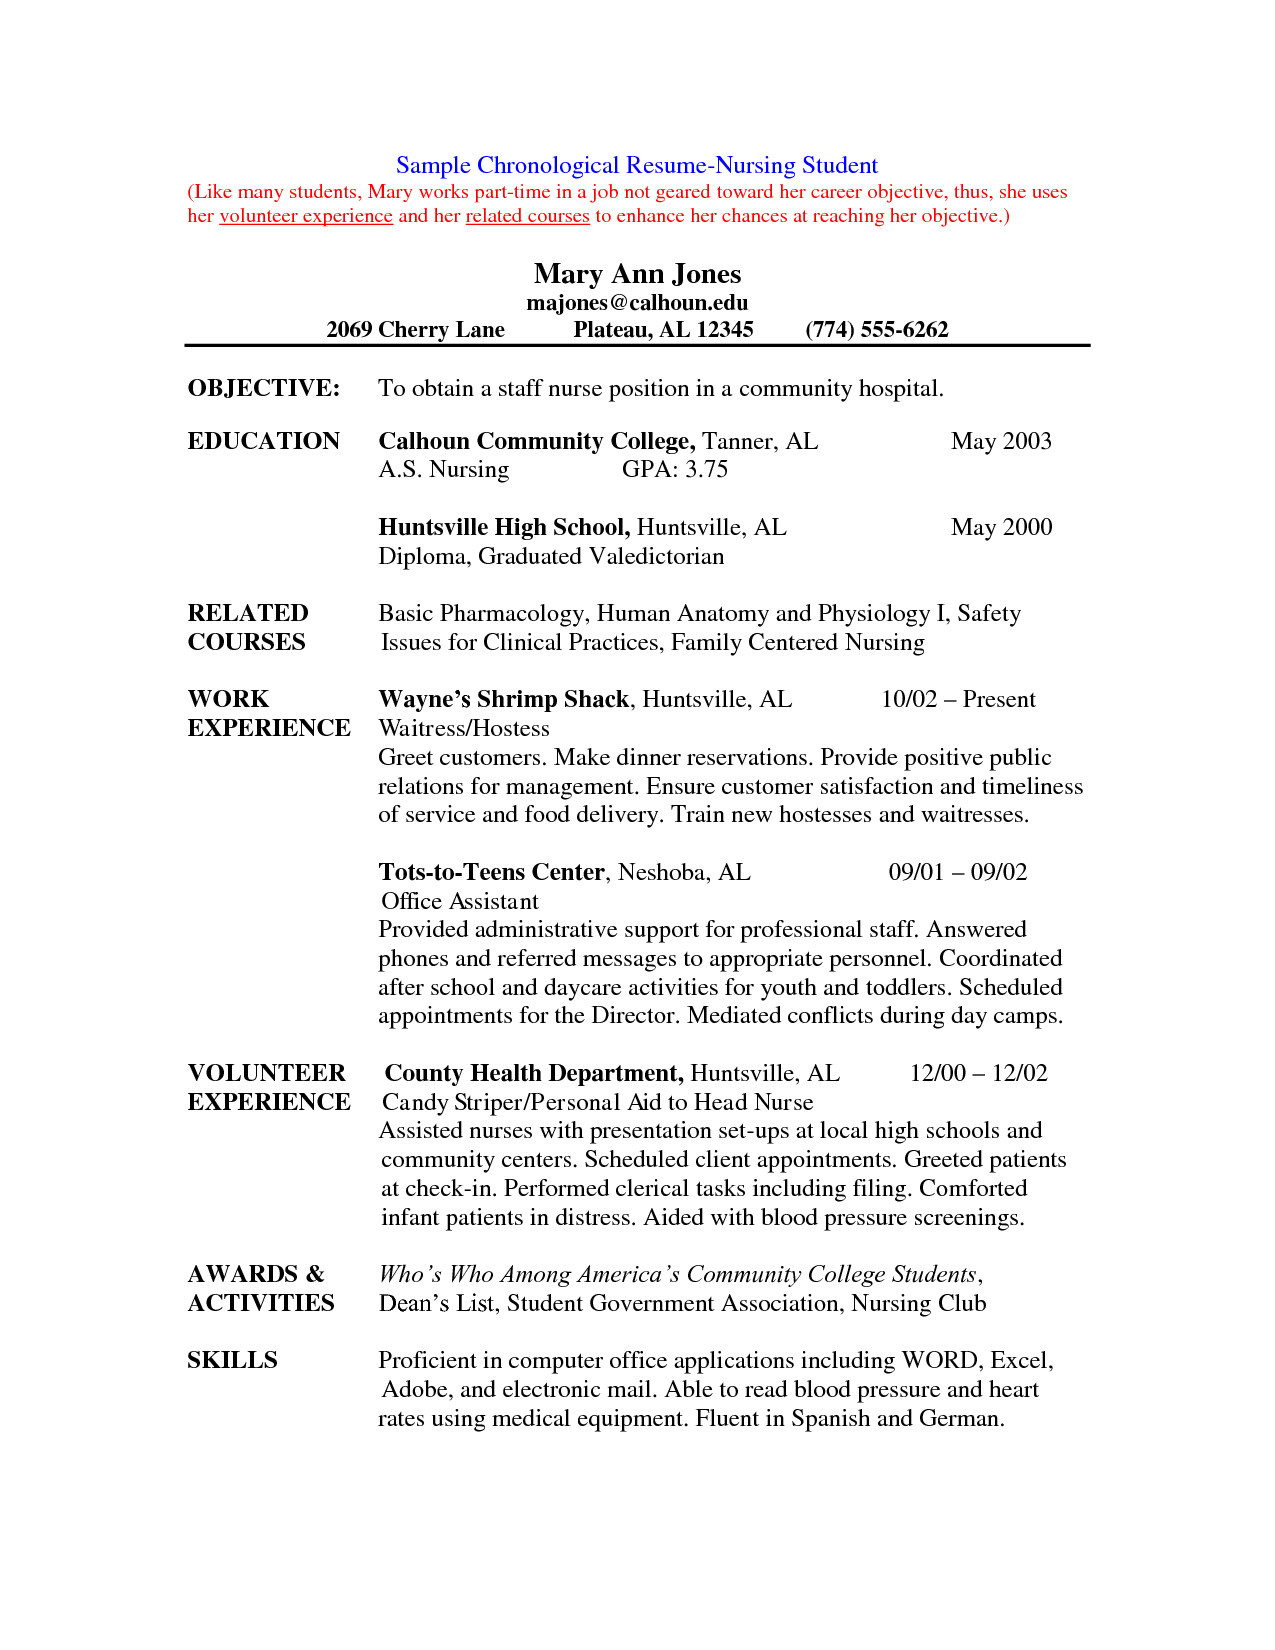 Nursing Student Resumes Examples Cover Letters for Nursing Job Application Pdf